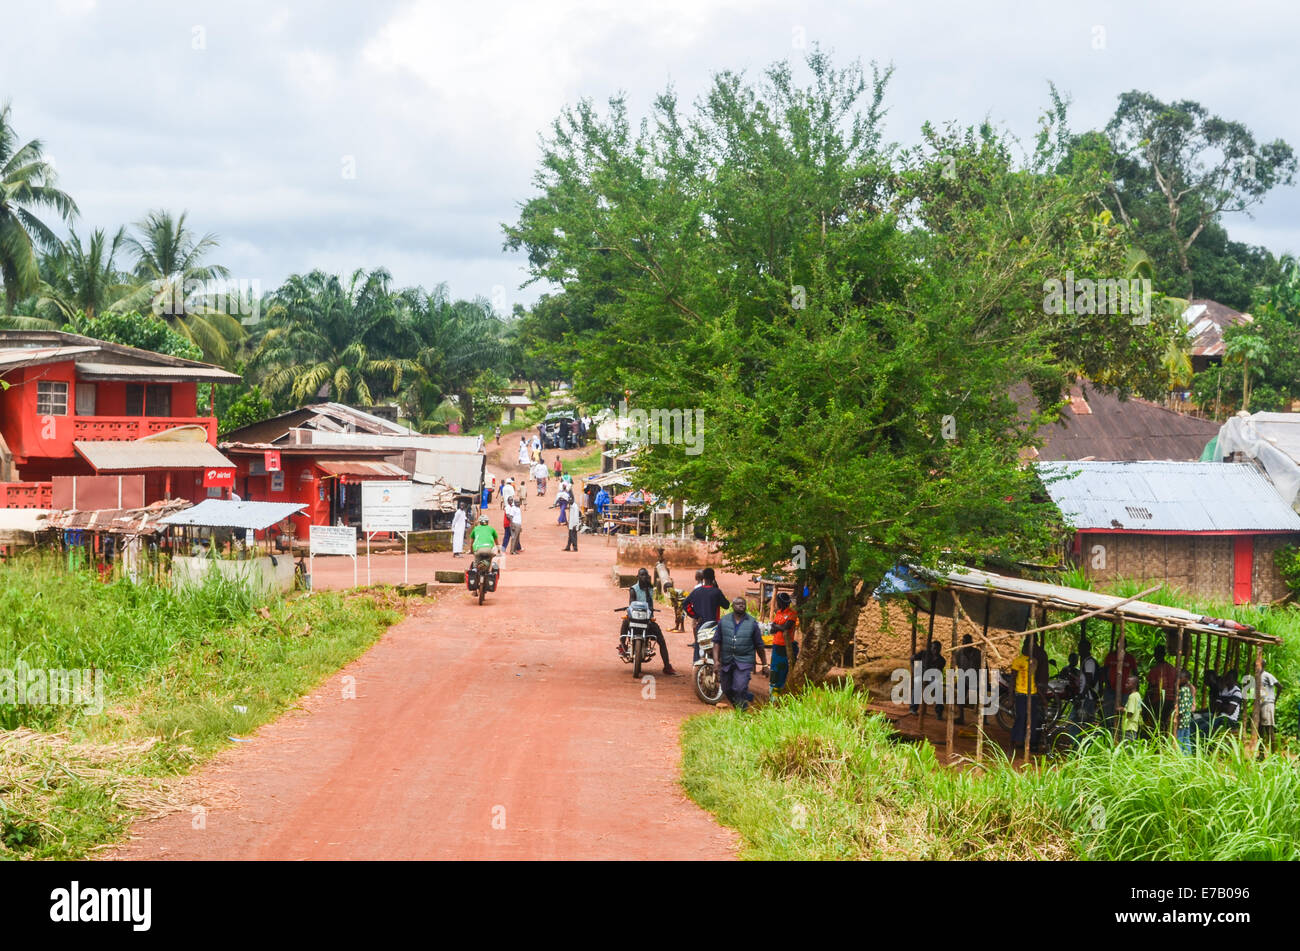 Small town of Potoru, in the east of Sierra Leone, not far from the border with Liberia - Stock Image